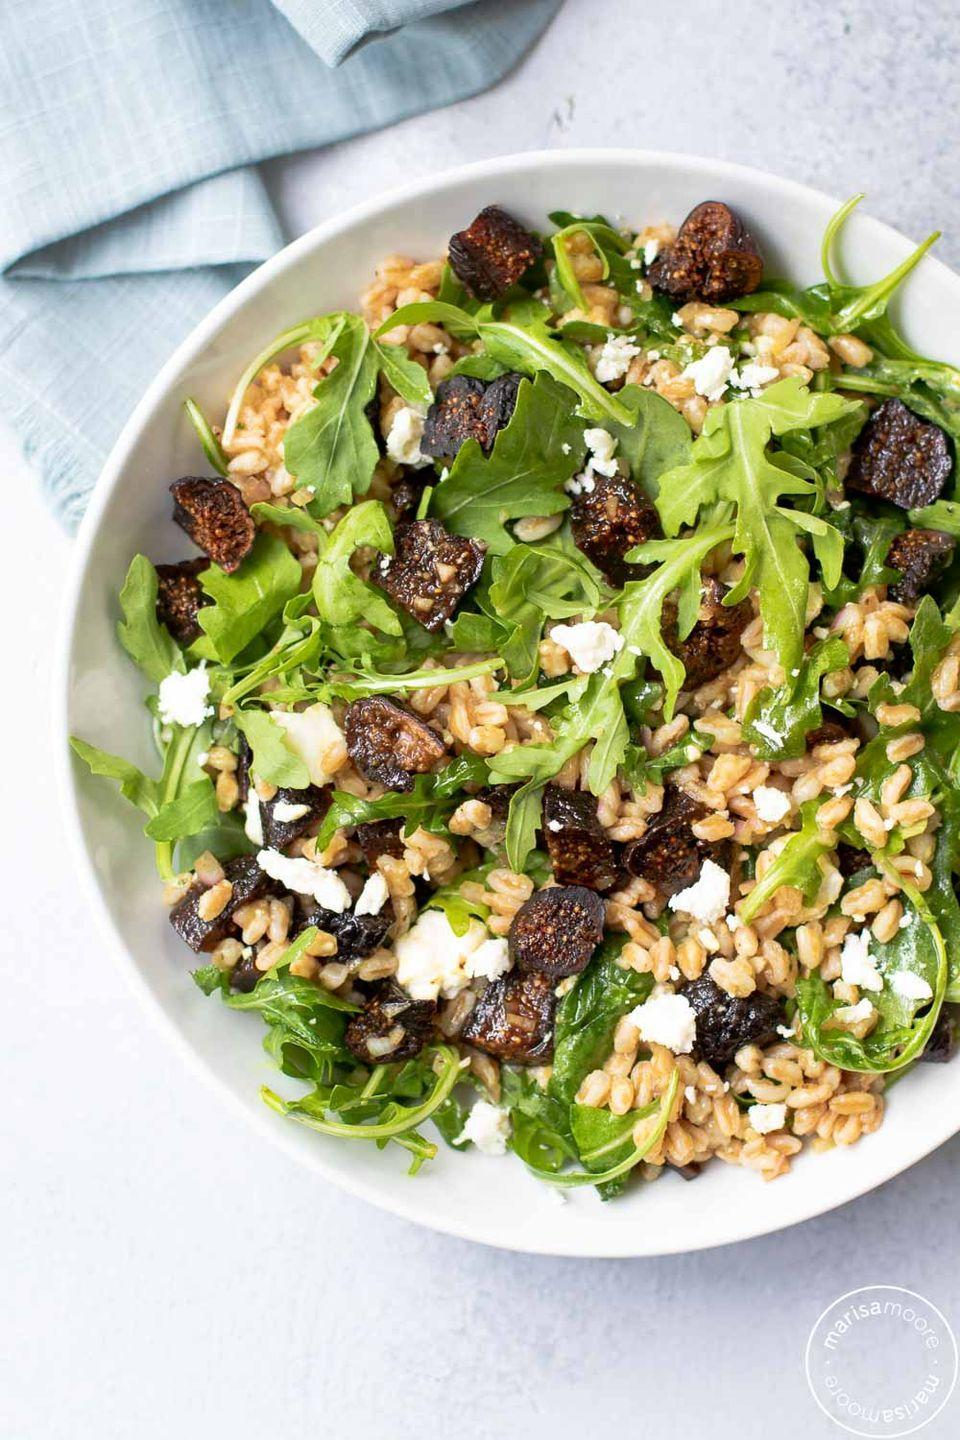 "<p>Sweet dried figs, hearty farro, tart goat cheese and bitter arugula combine to make a delicious and filling holiday salad.</p><p><strong>Get the recipe at <a href=""https://marisamoore.com/fig-farro-salad/"" rel=""nofollow noopener"" target=""_blank"" data-ylk=""slk:Marisa Moore"" class=""link rapid-noclick-resp"">Marisa Moore</a>.</strong> </p>"